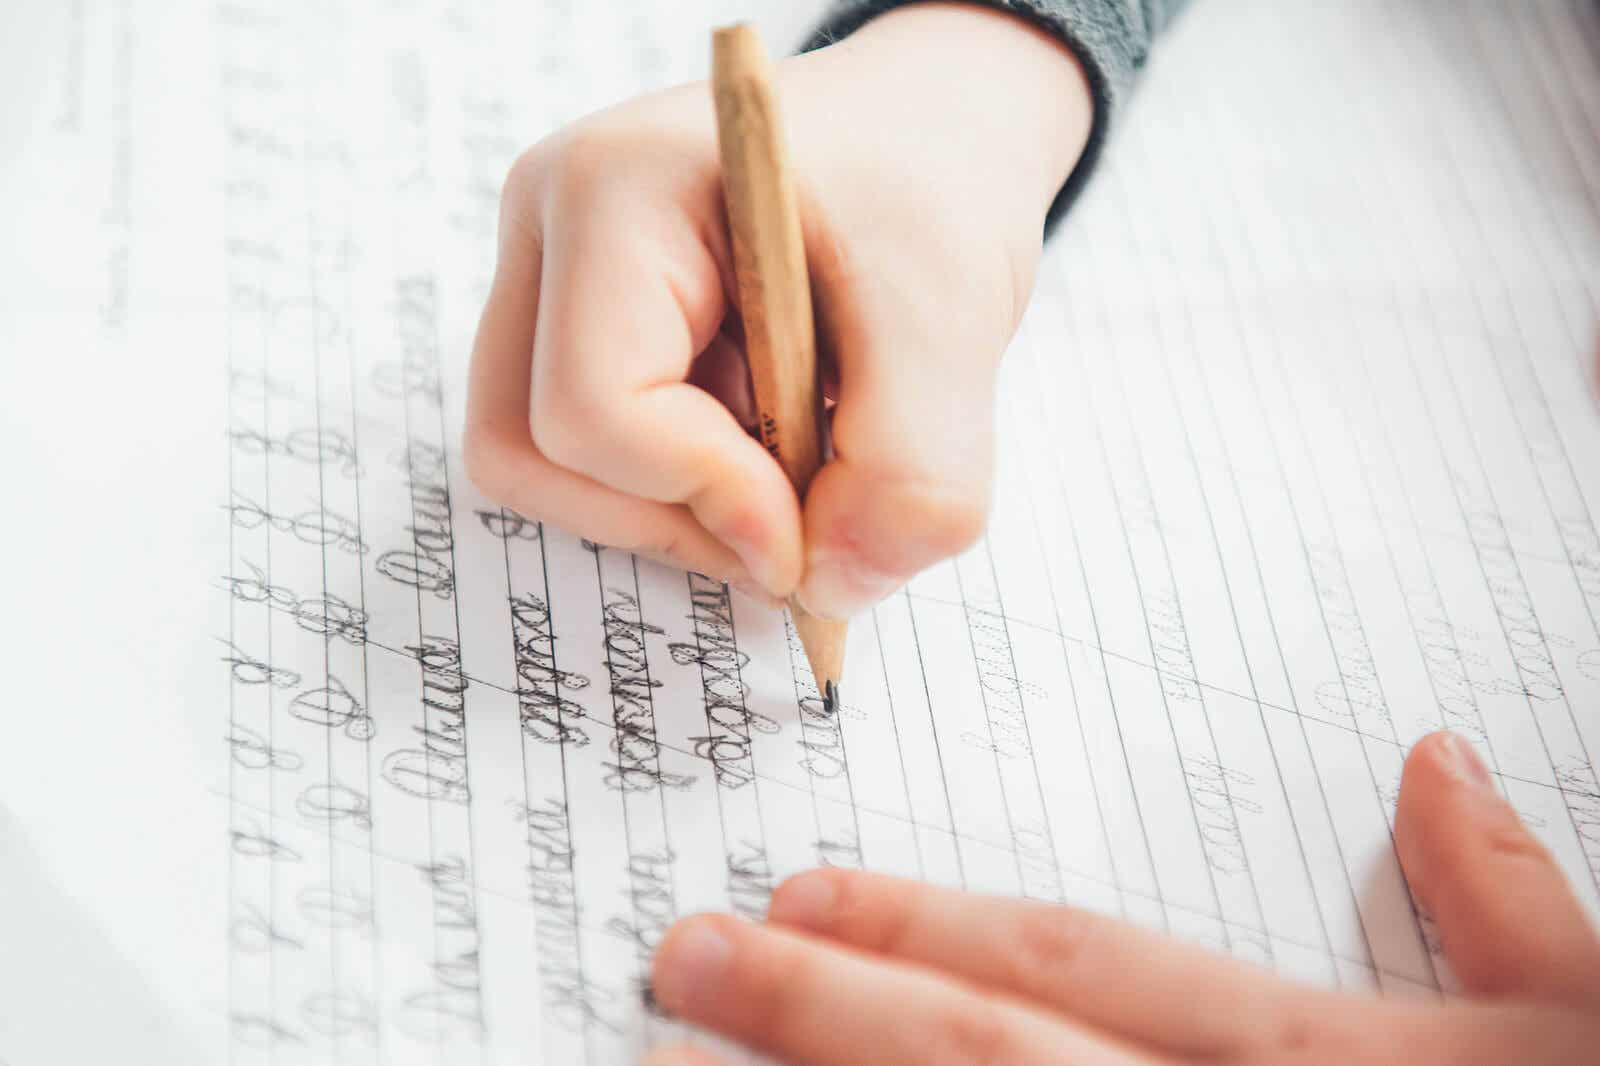 A child practicing his handwriting.